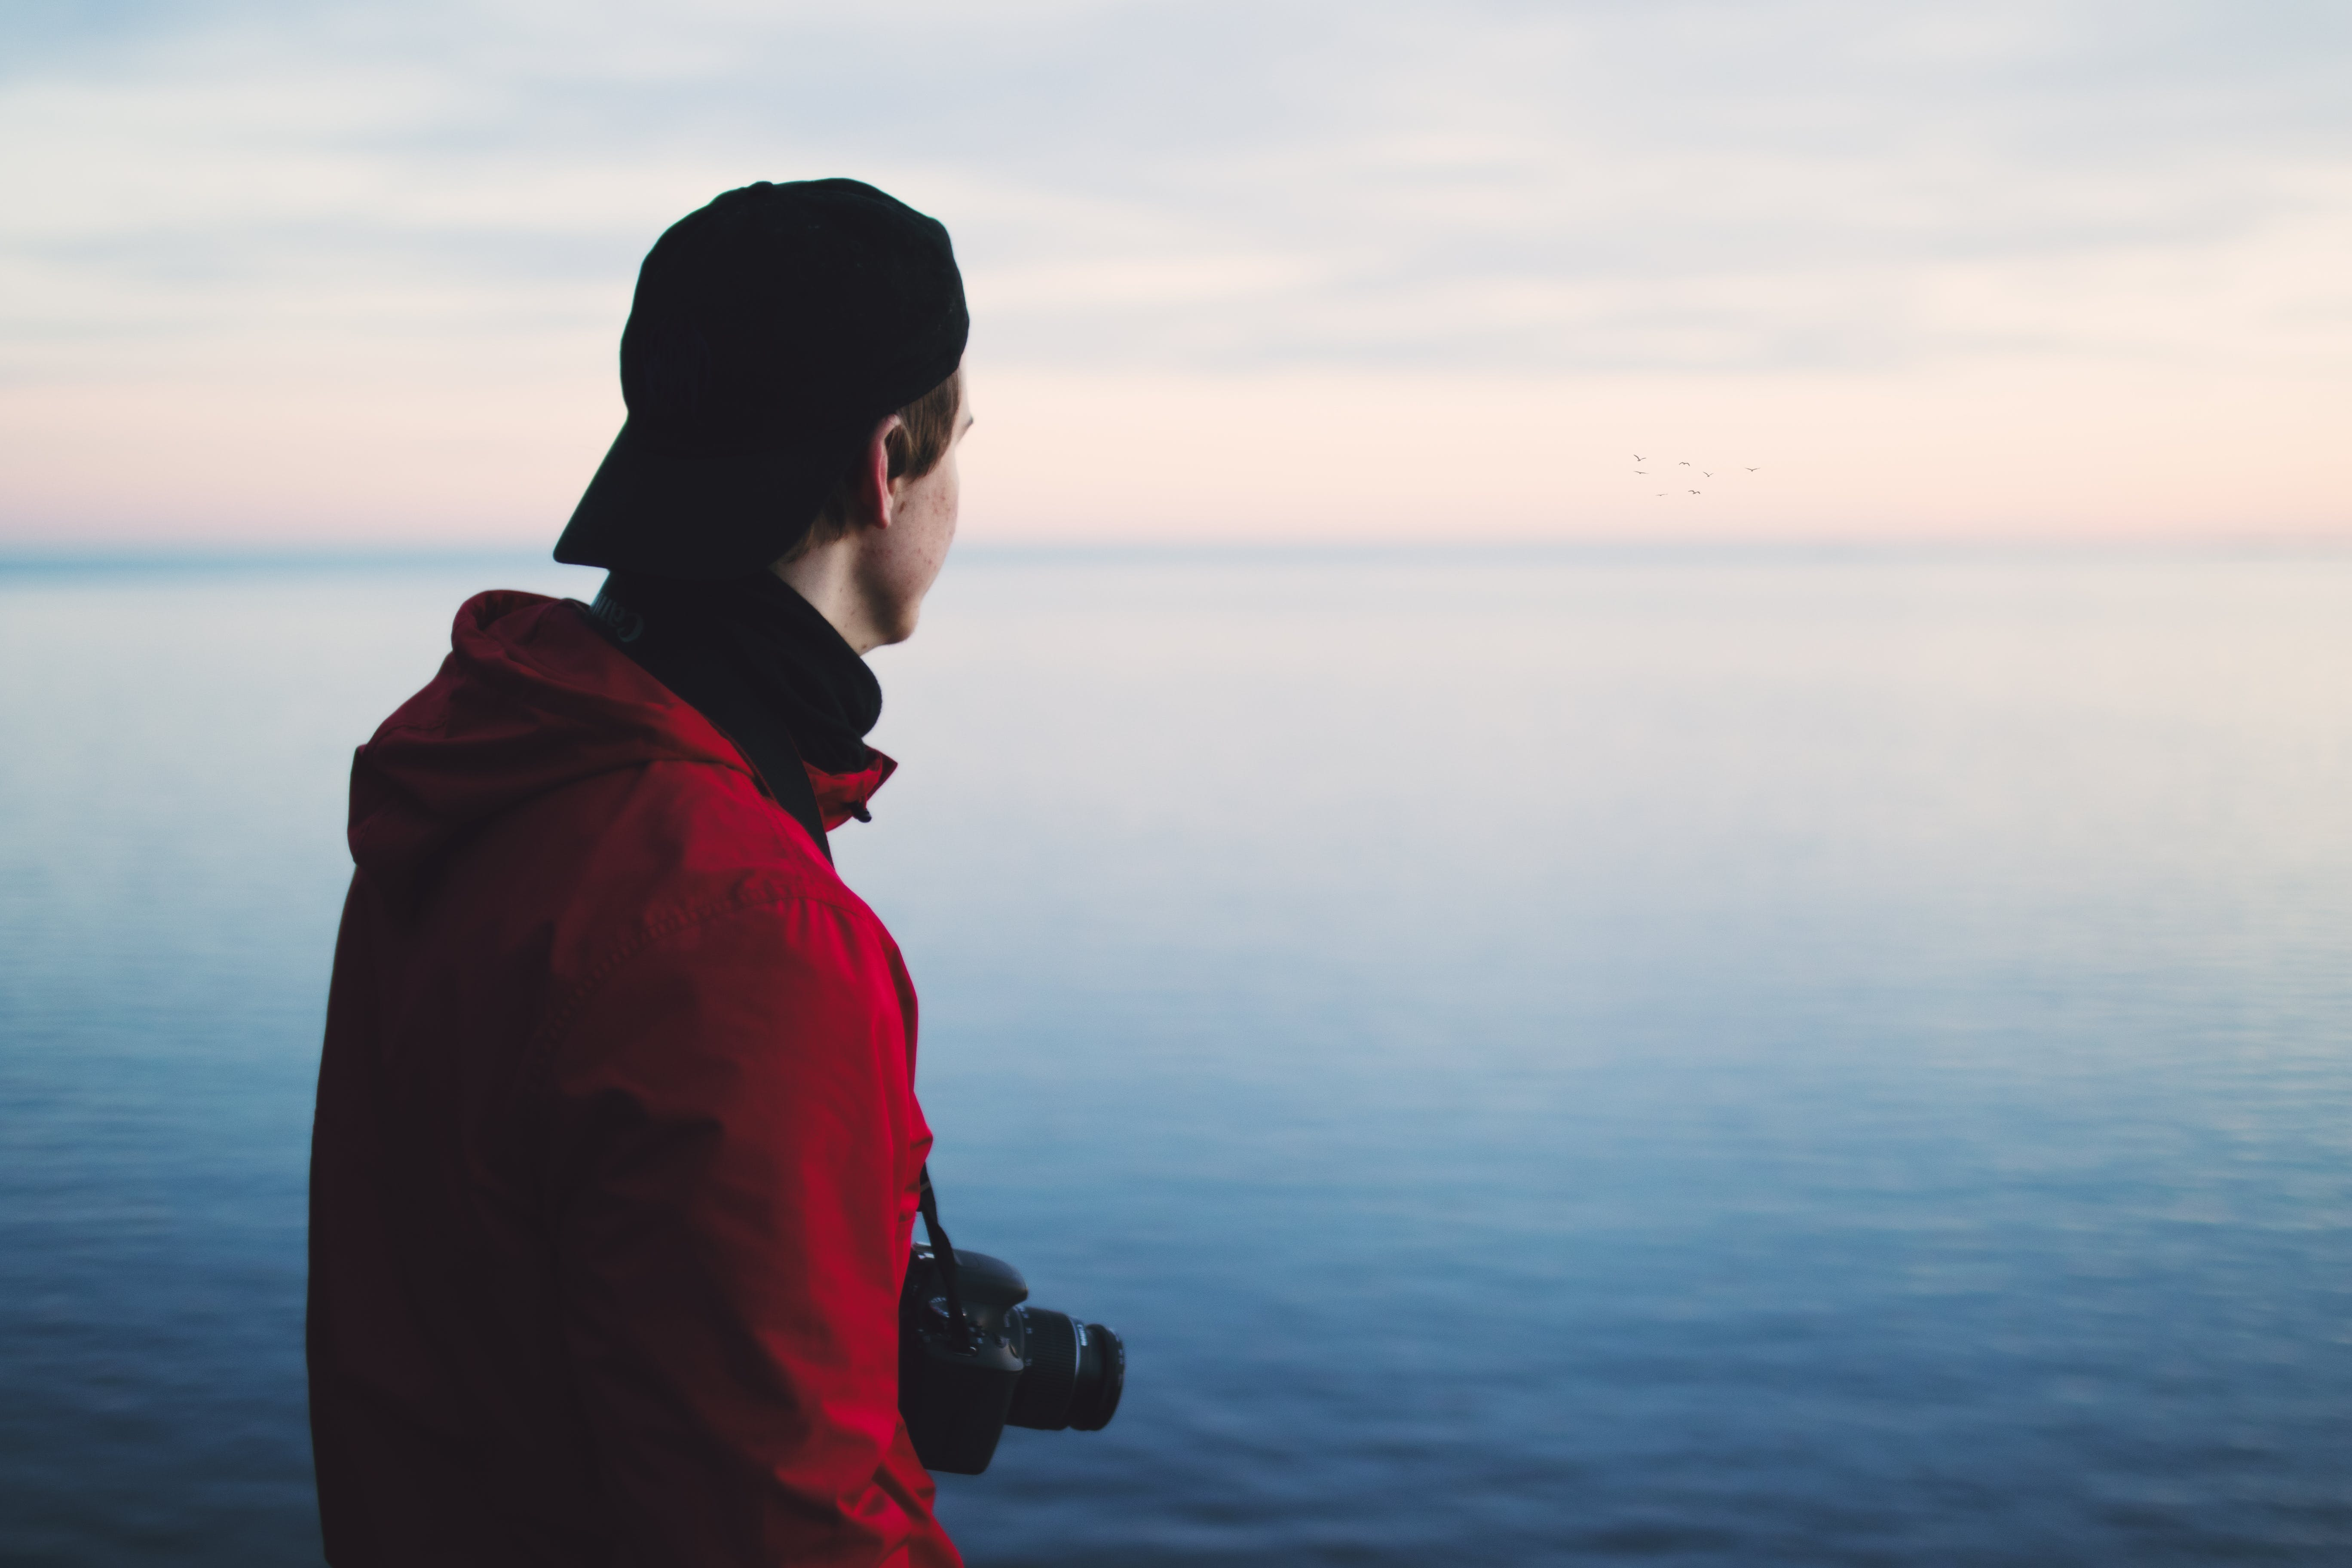 Man in Red Jacket Standing Near Body of Water